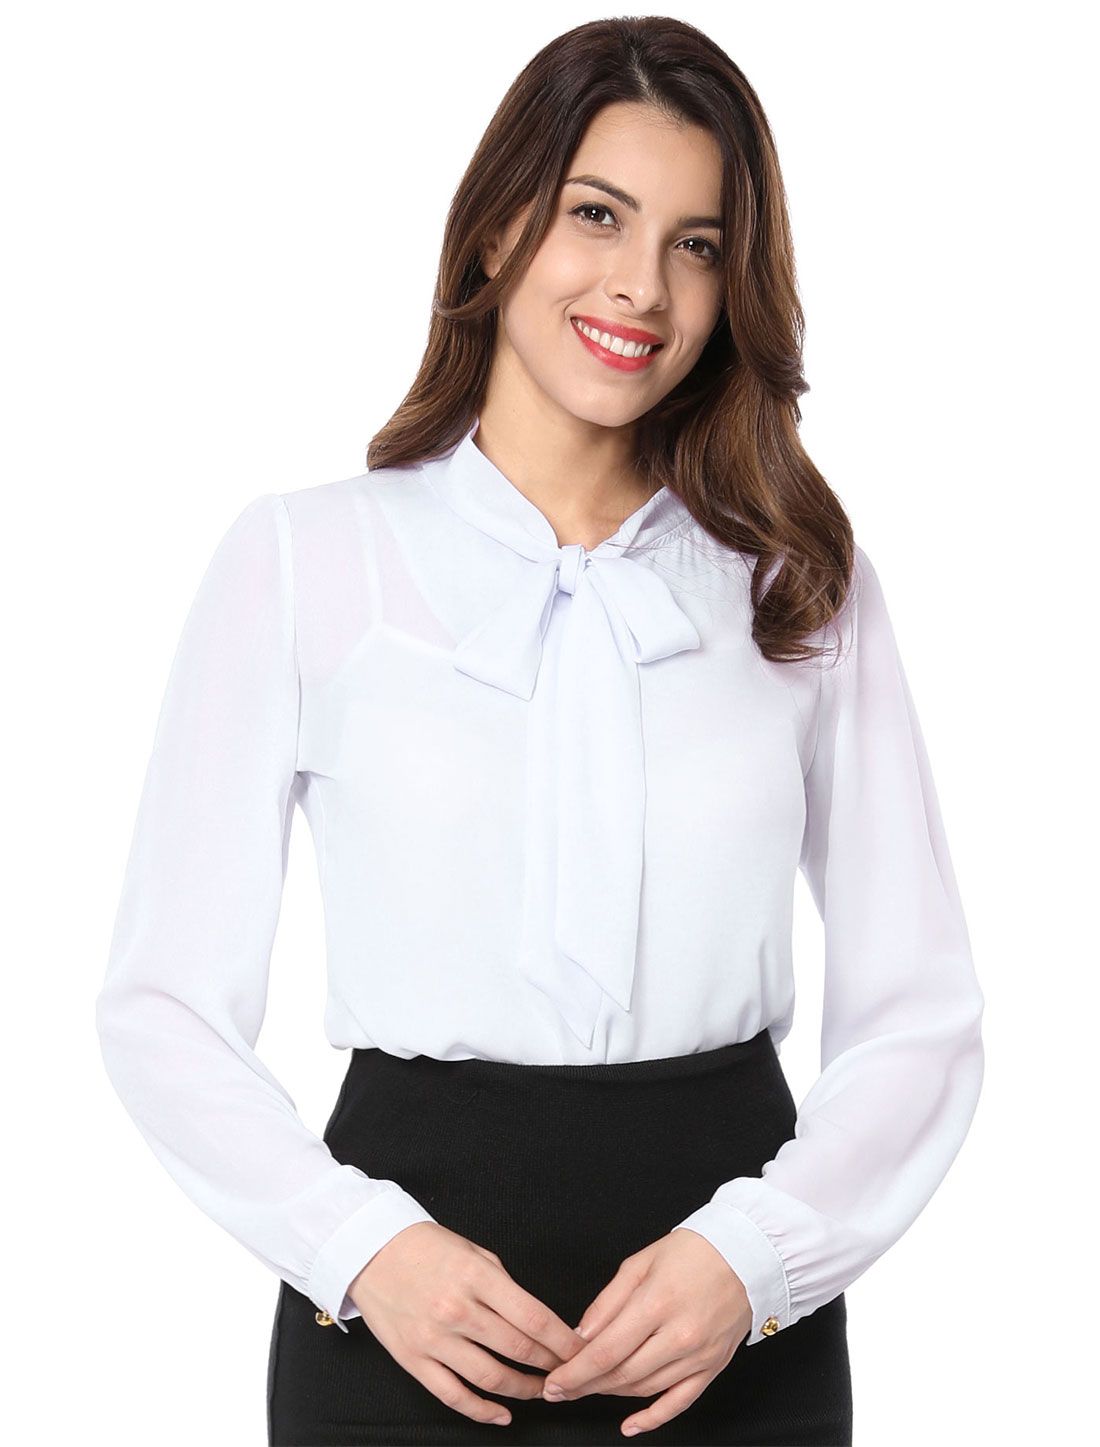 Ladies Chic Self-Tie Bowknot Stand Collar Long Sleeve White Blouse XS